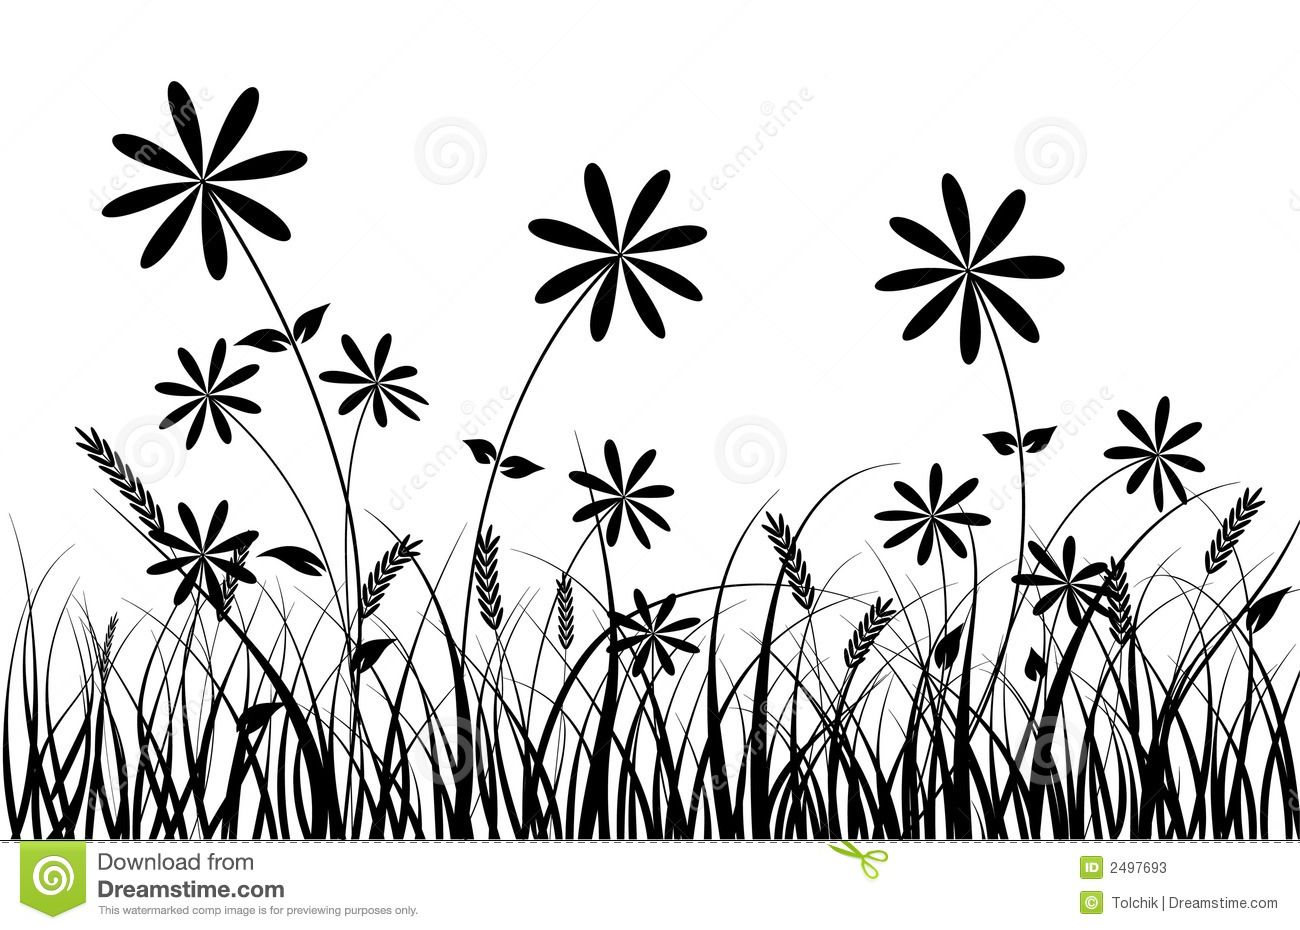 Grass Vector Silhouette At Getdrawings